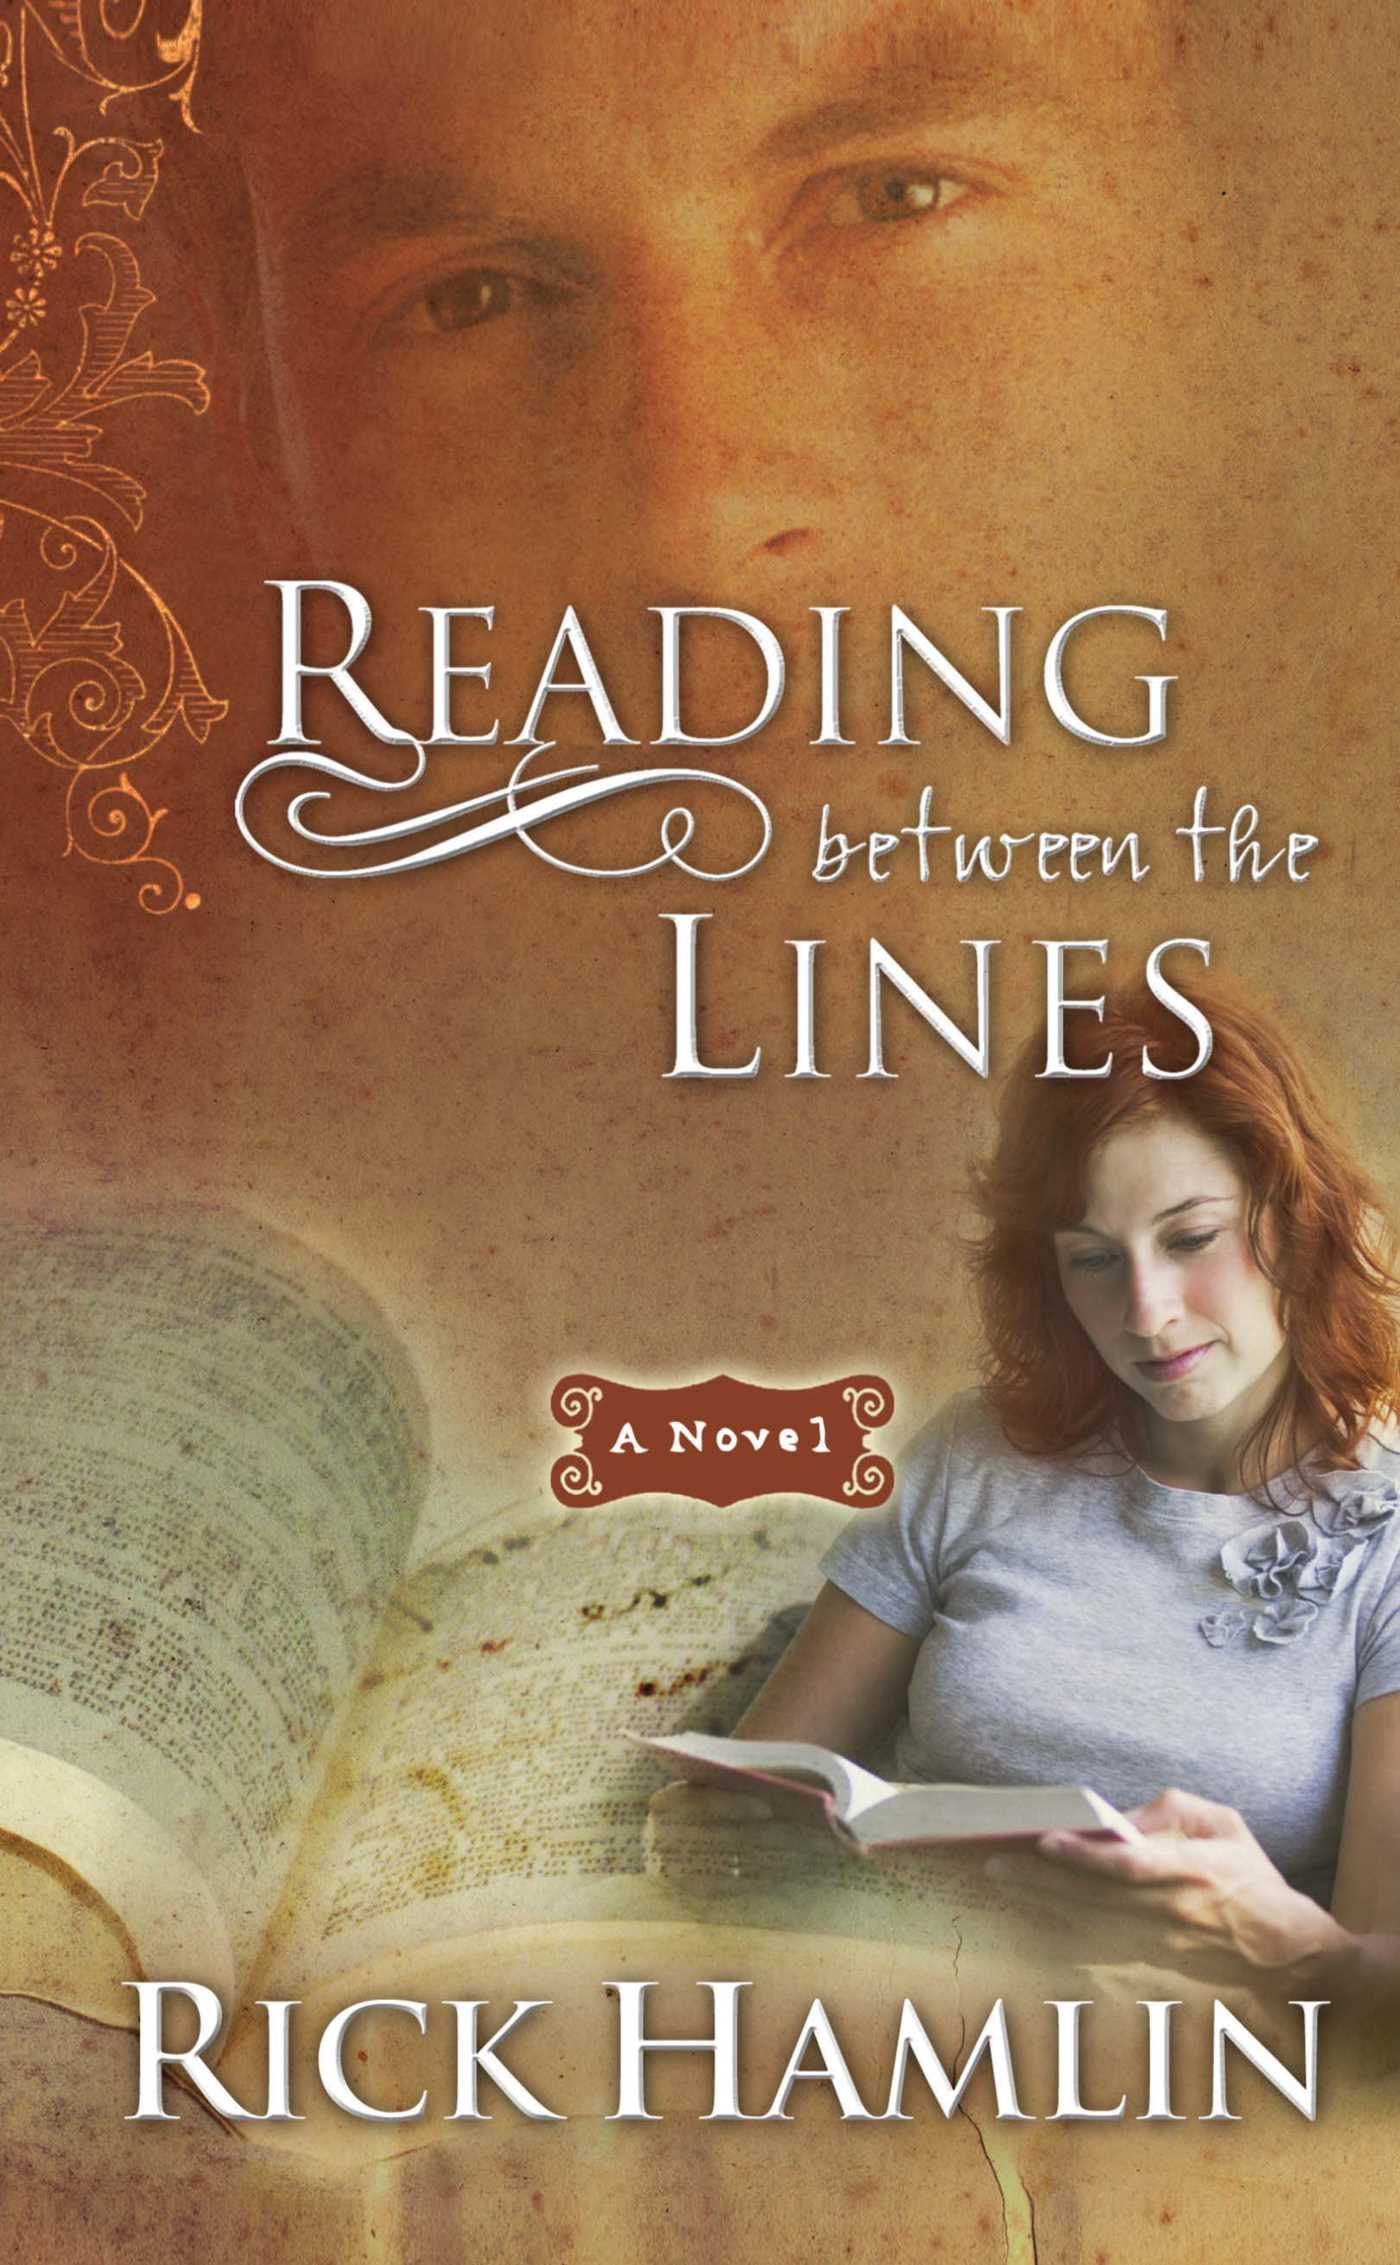 Reading-between-the-lines-9781582295787_hr